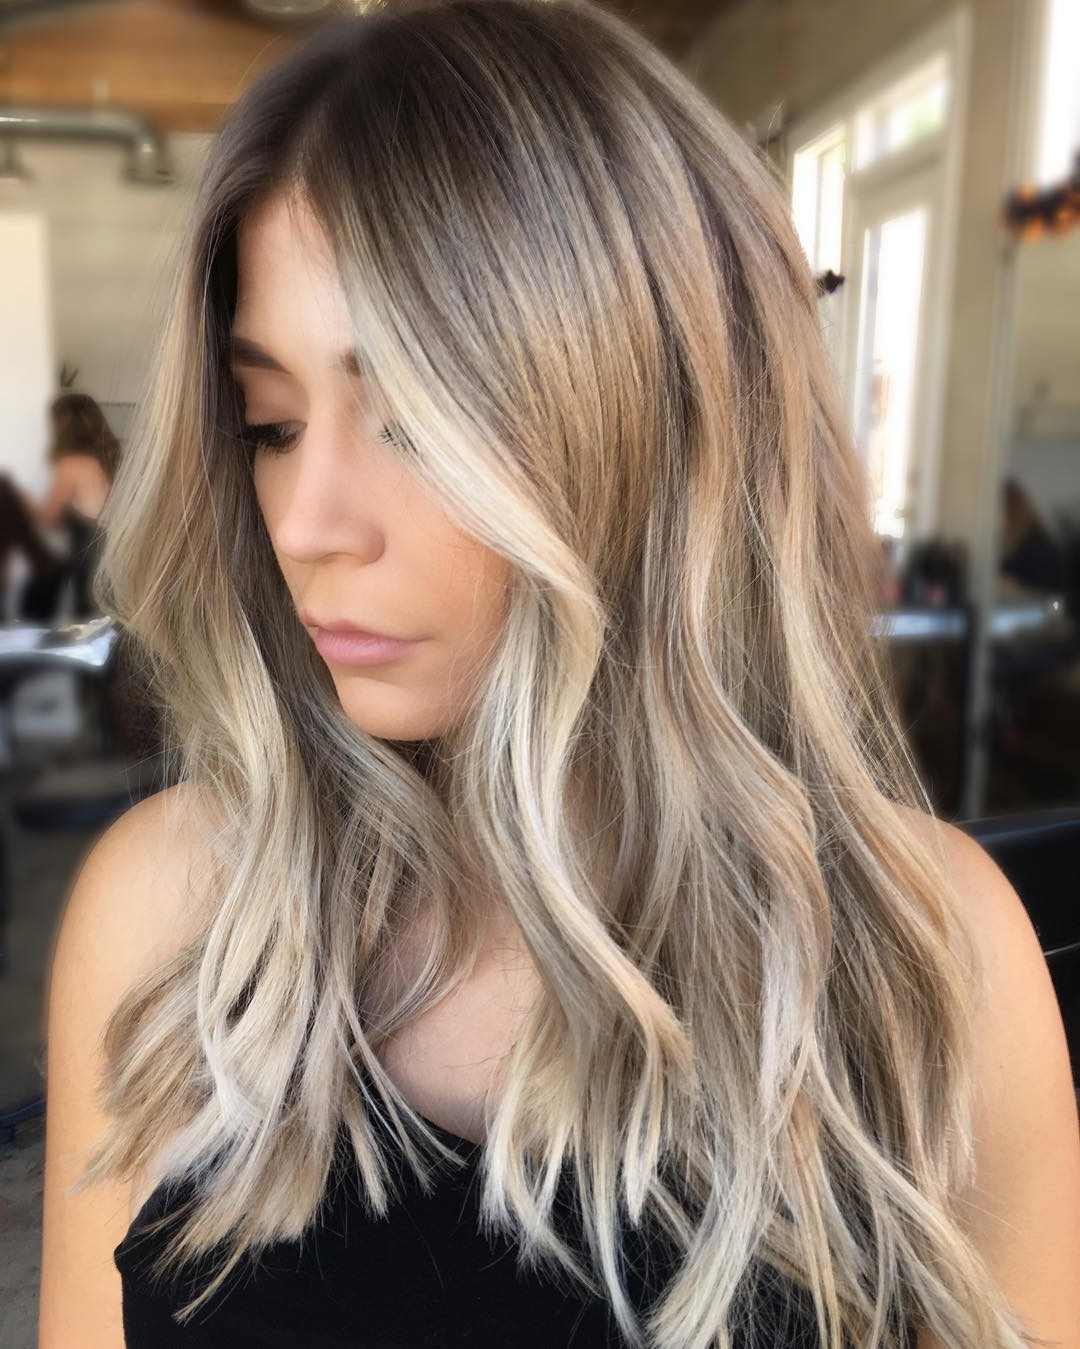 10 Ash Blonde Hairstyles For All Skin Tones, 2018 Best Hair Color Trends Throughout 2017 Glamorous Silver Blonde Waves Hairstyles (View 1 of 20)